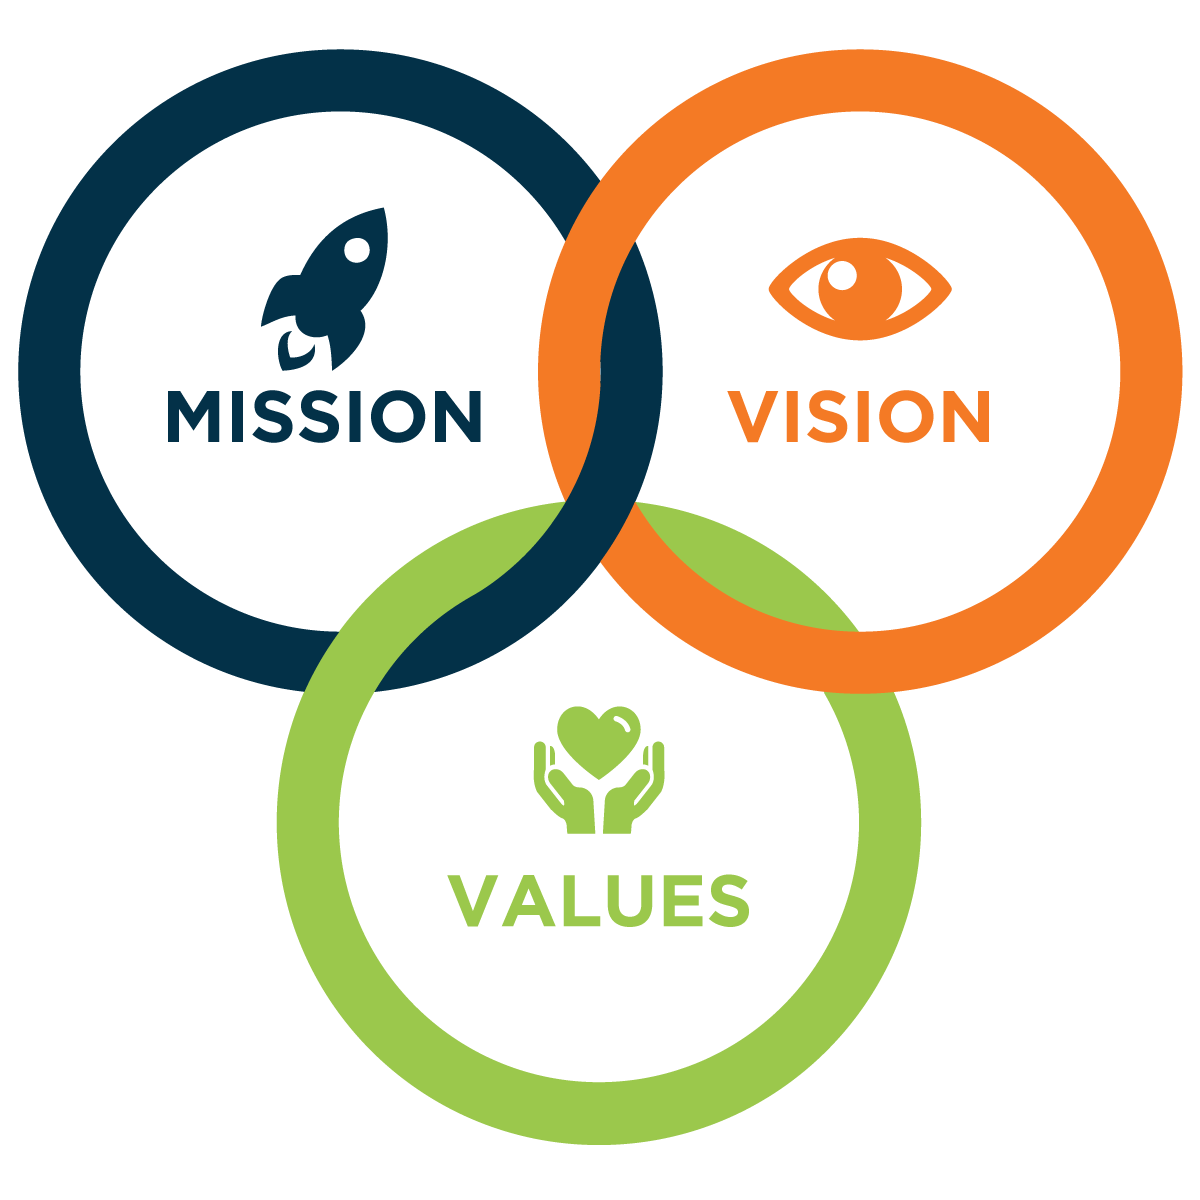 Mission And Vision -